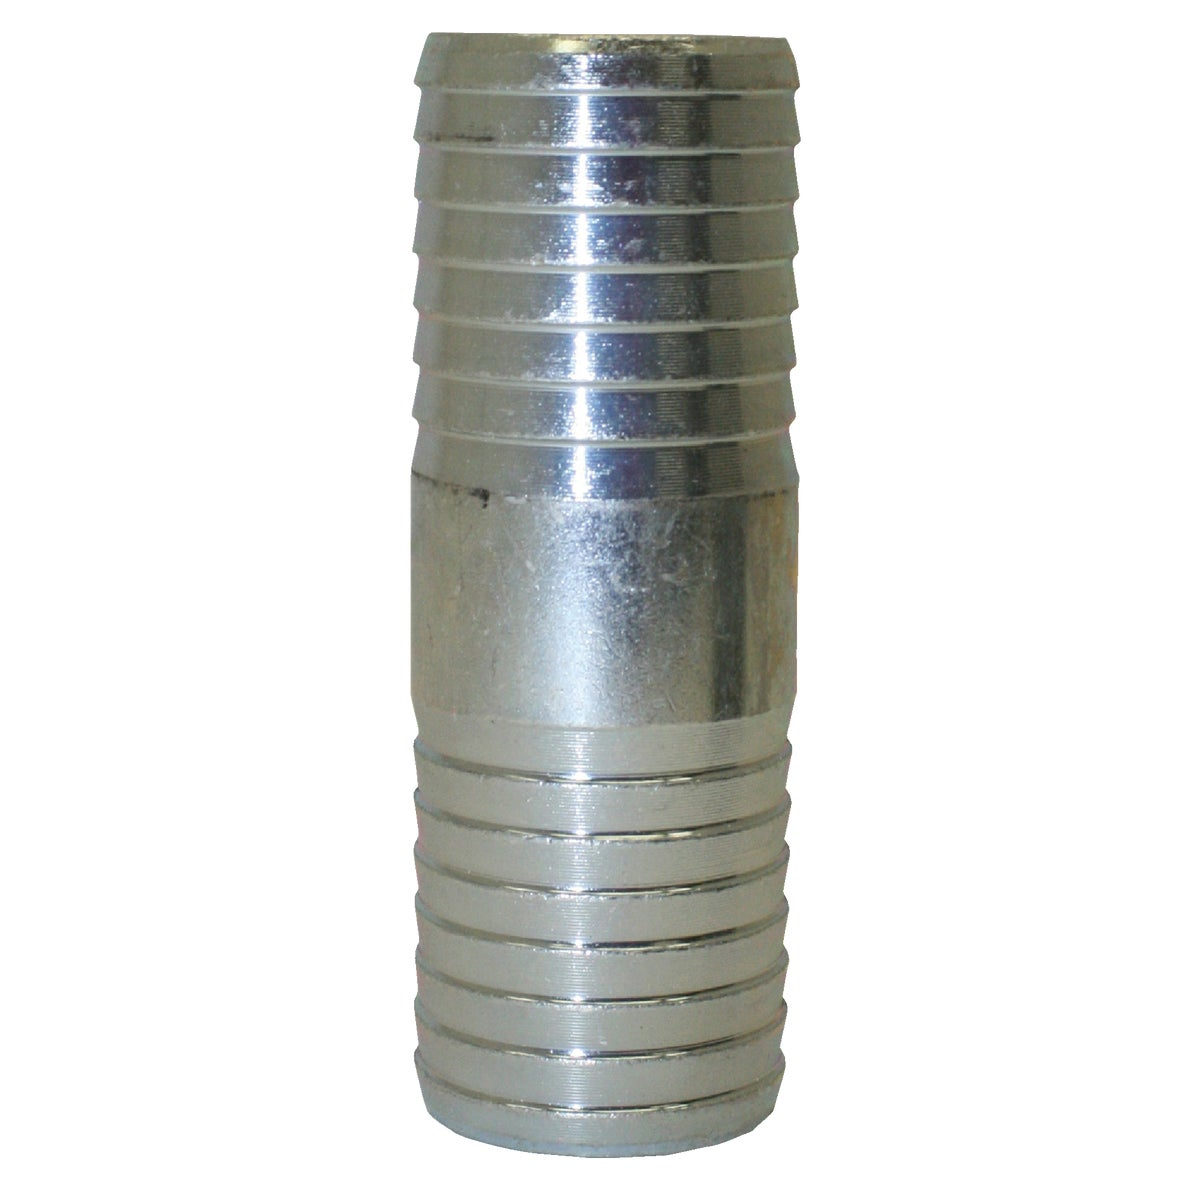 "1"" GALV INSERT COUPLING - SCP100 by Merrill Mfg"